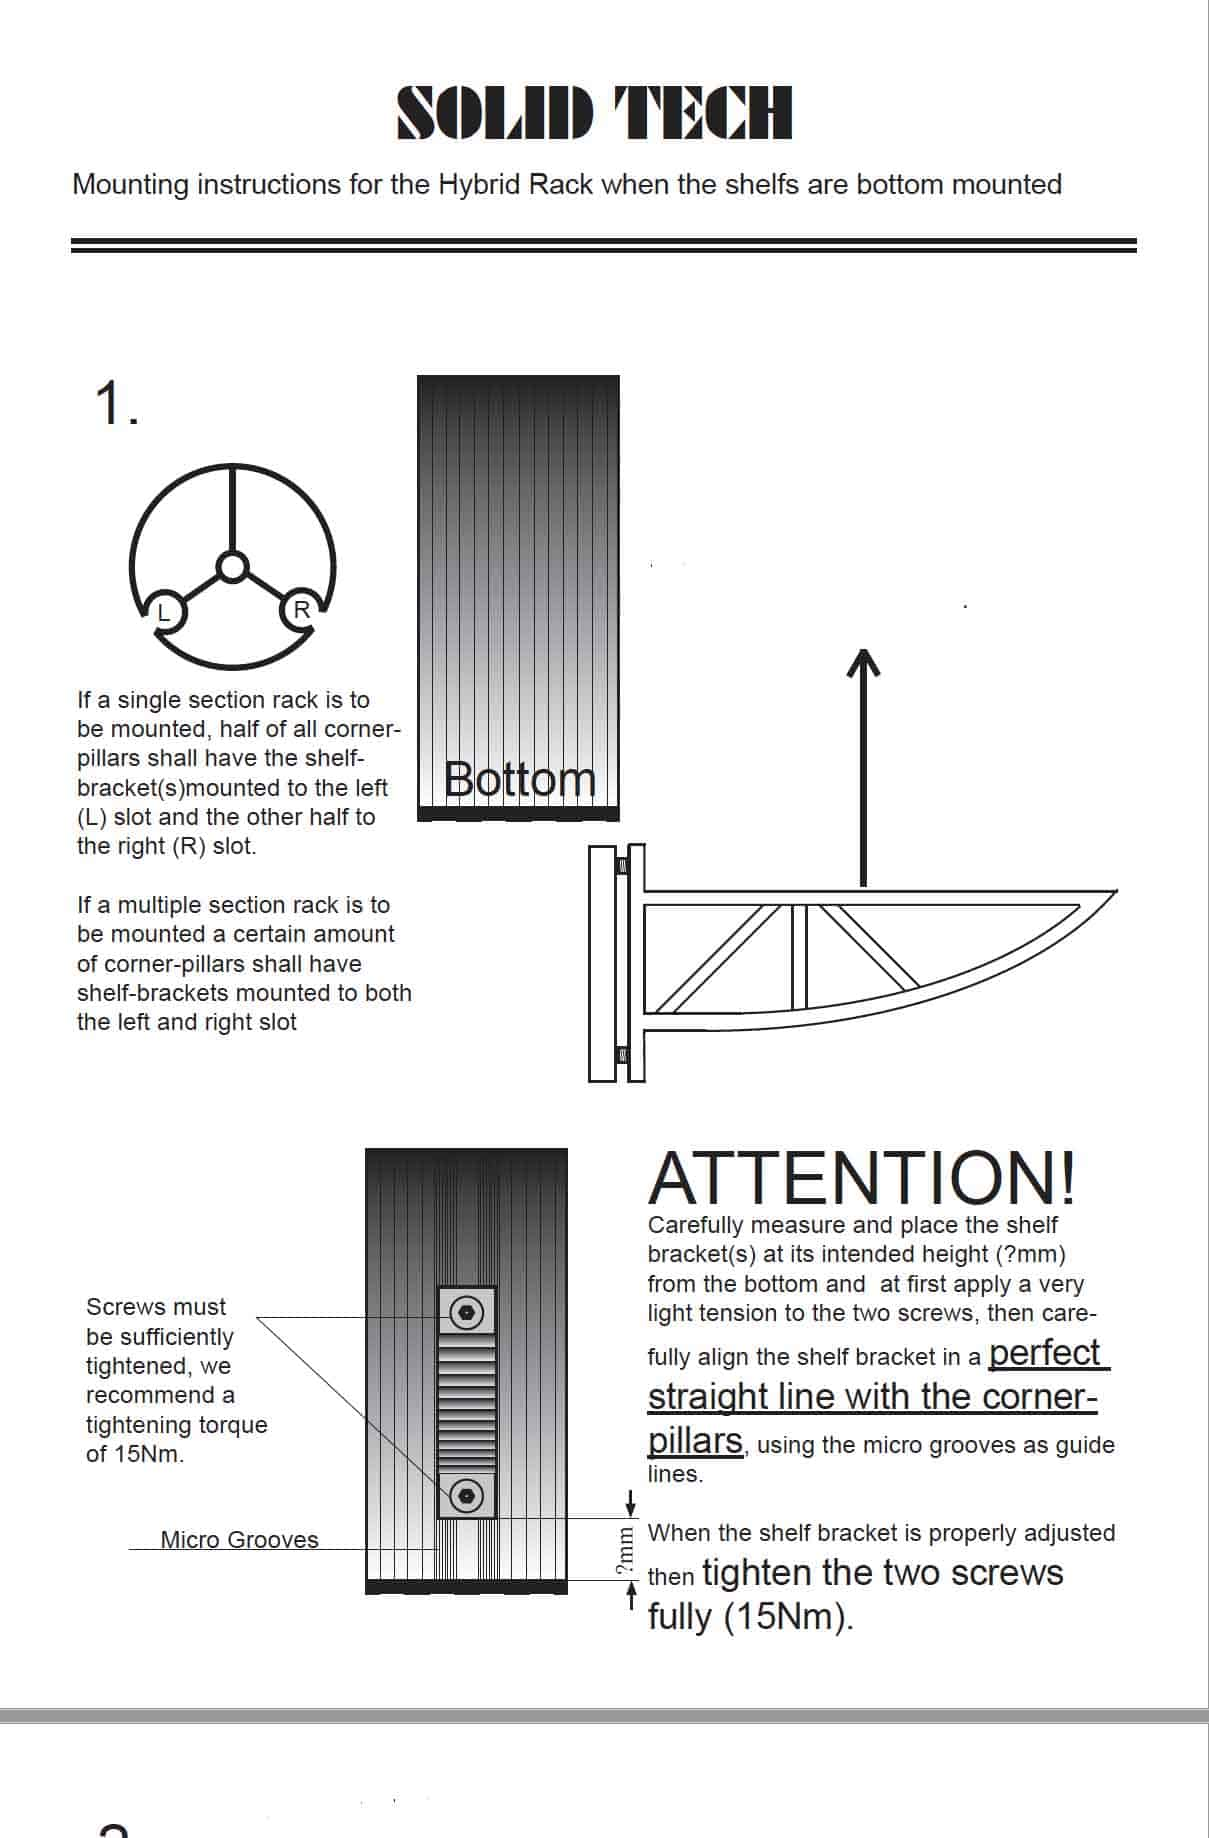 Hybrid Bottom Mounted Shelves Assembly Instructions concrete shelves Image